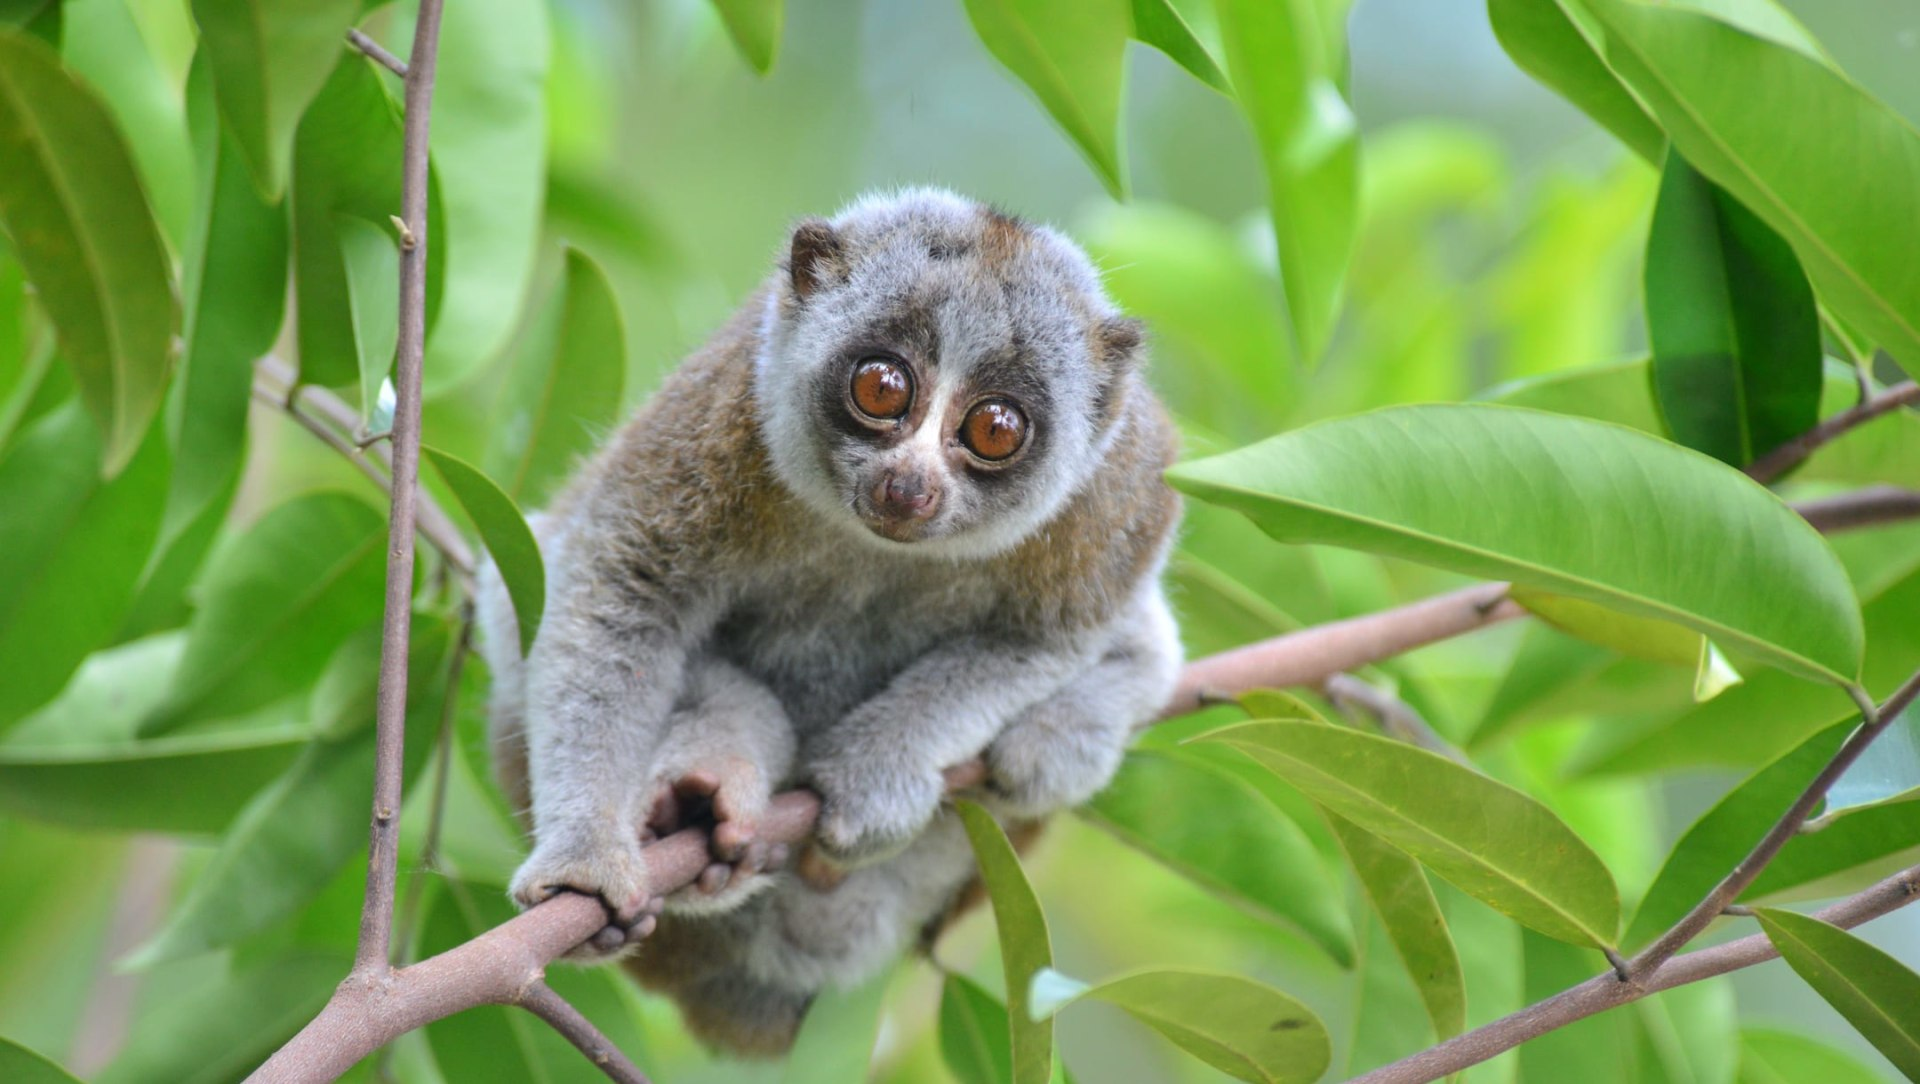 The Bengal Slow Loris: Disappearing Gently into That Good Night